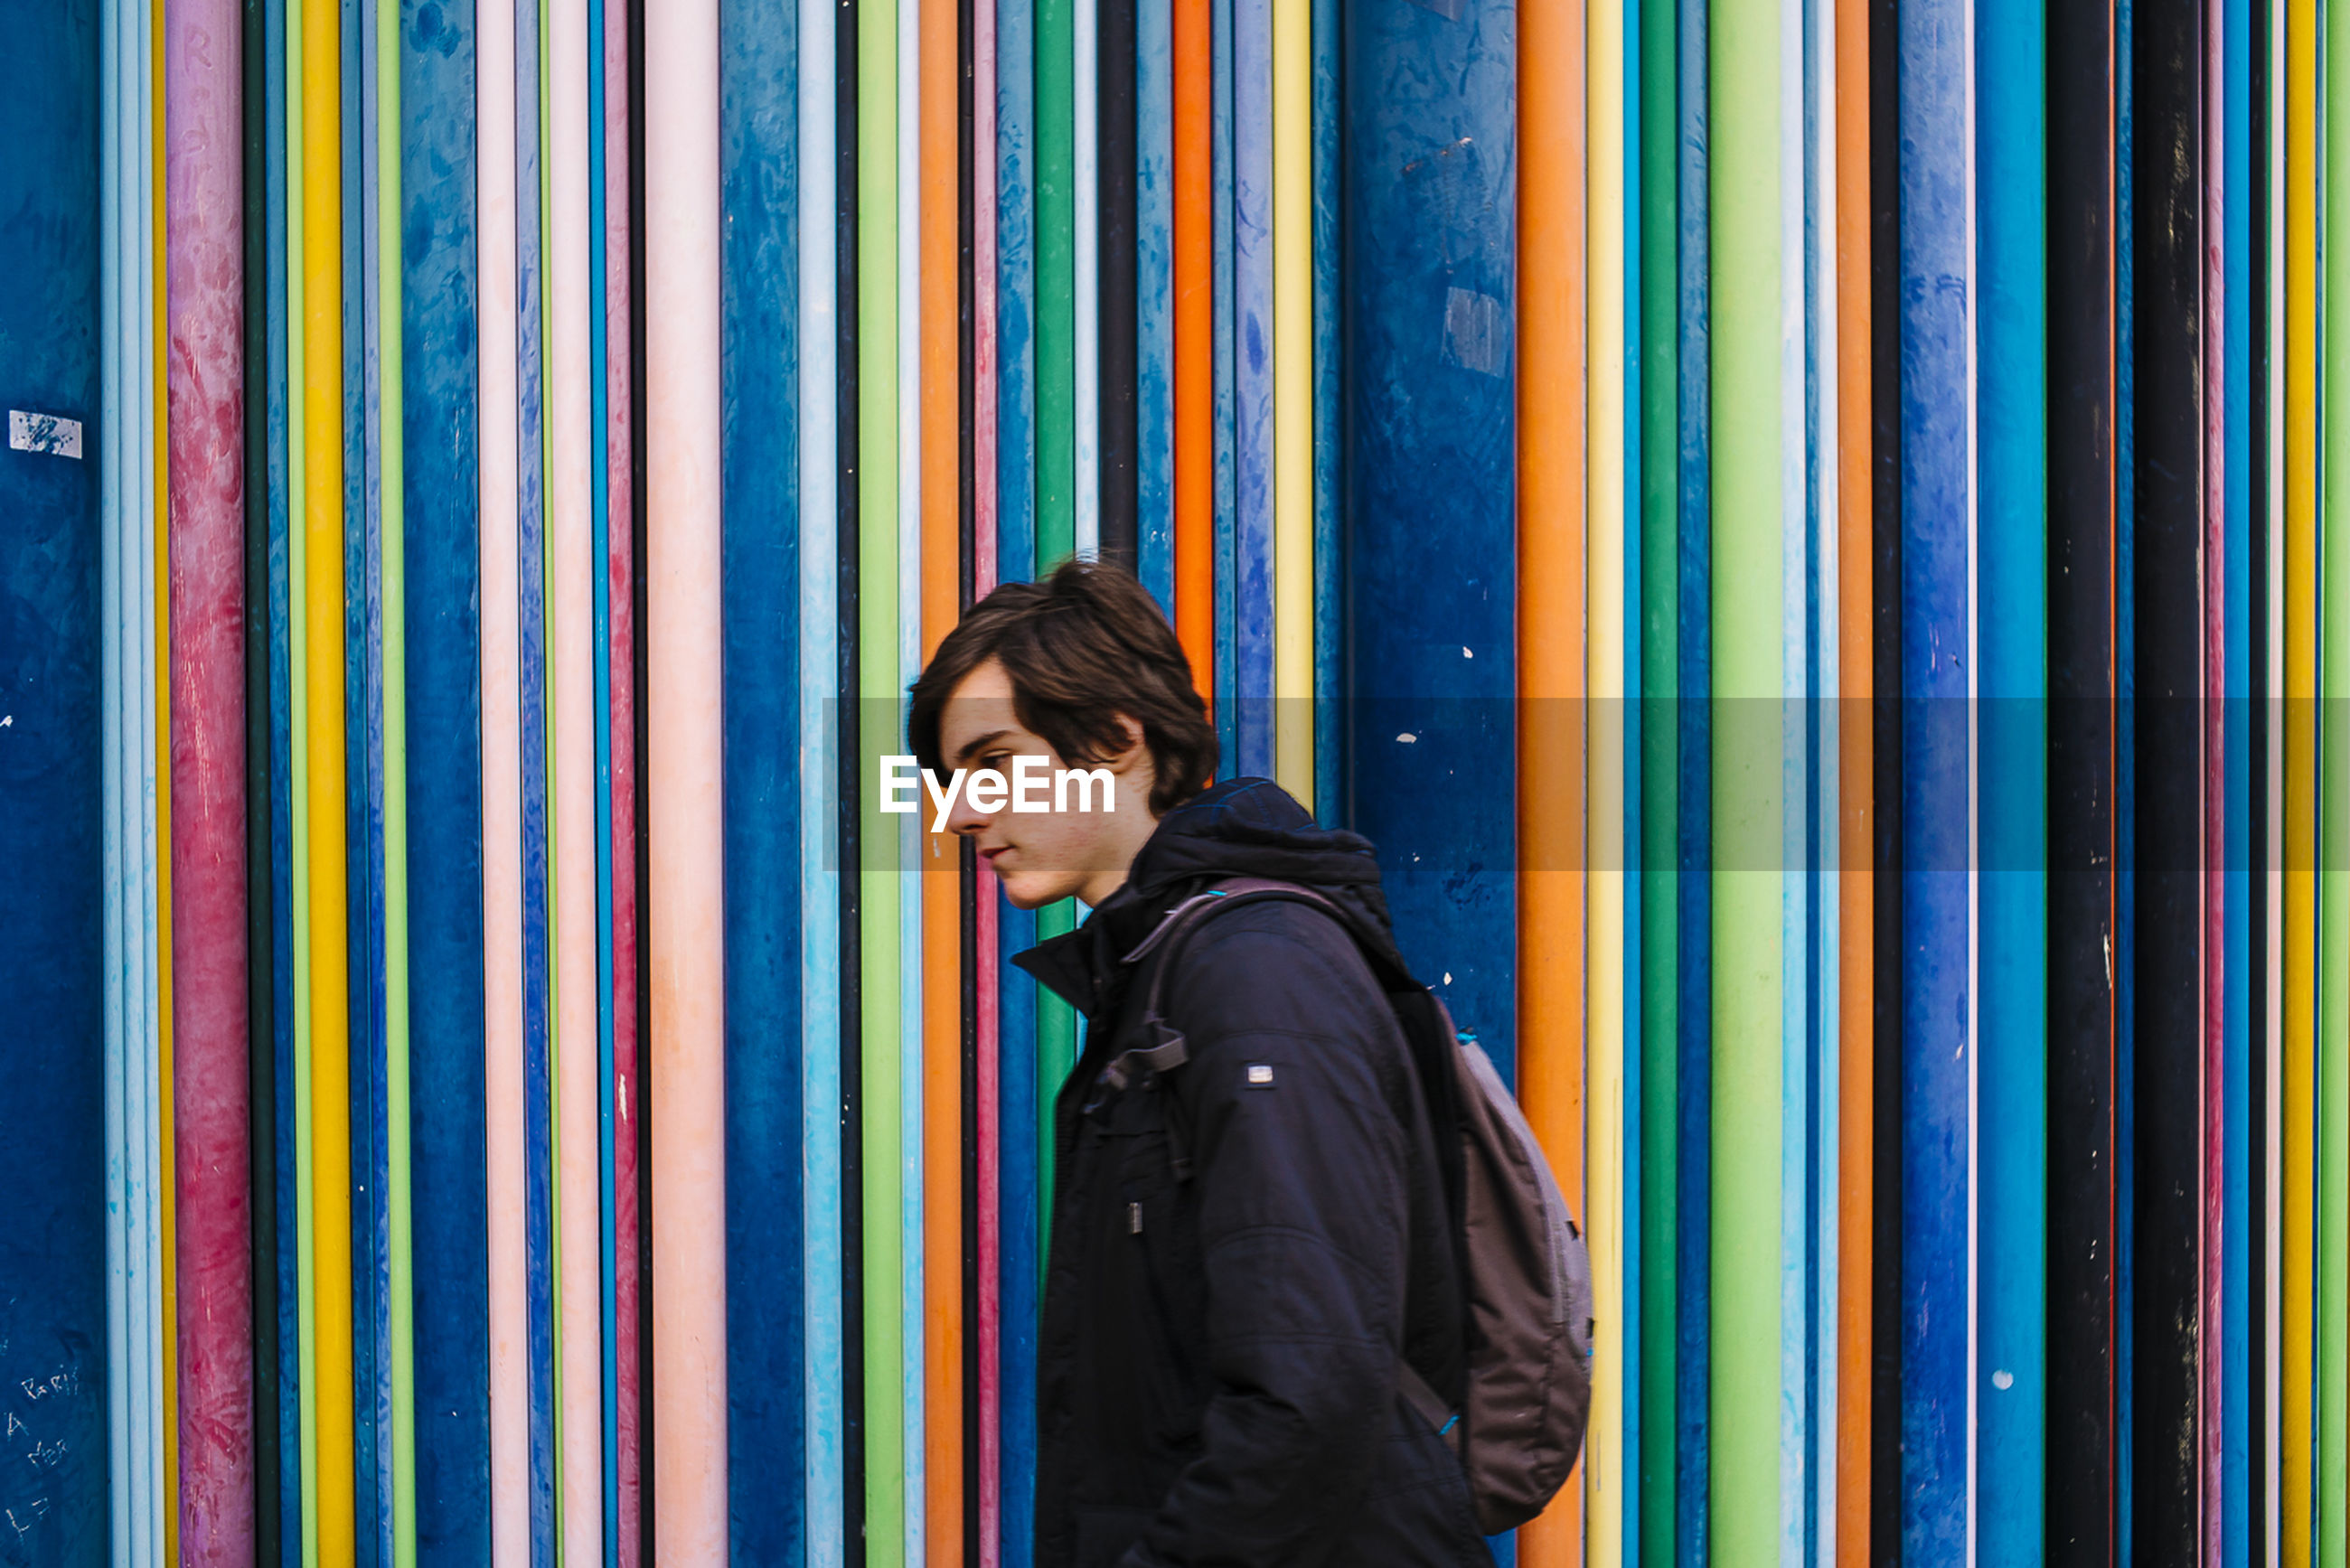 Handsome man walking against colorful wall